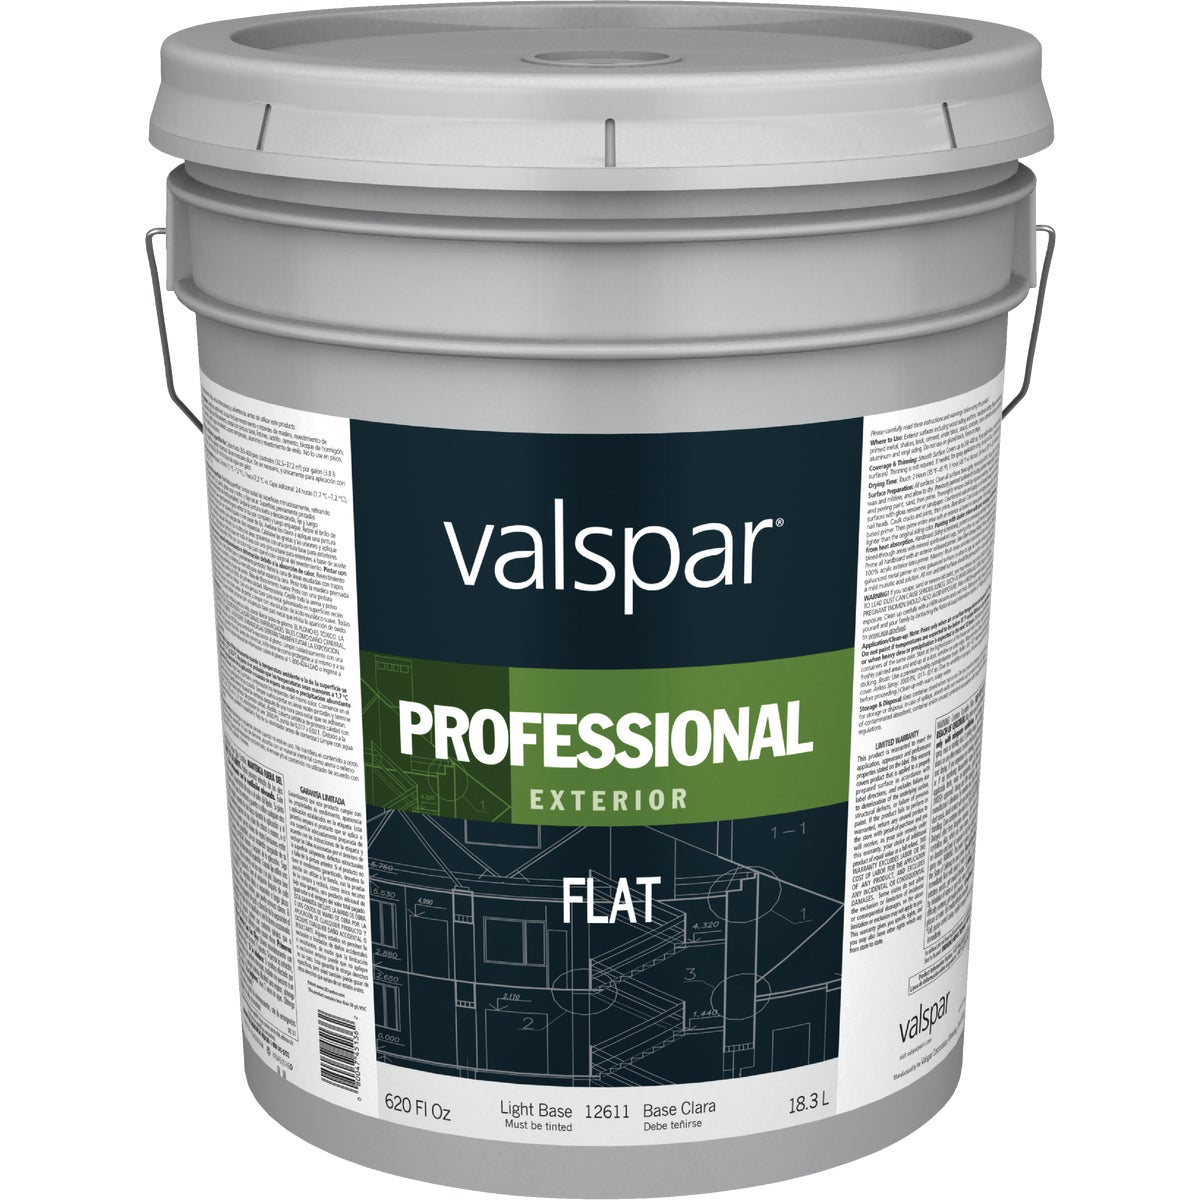 EXT FLAT LGHT BASE PAINT - 045.0012611.008 by Valspar Corp